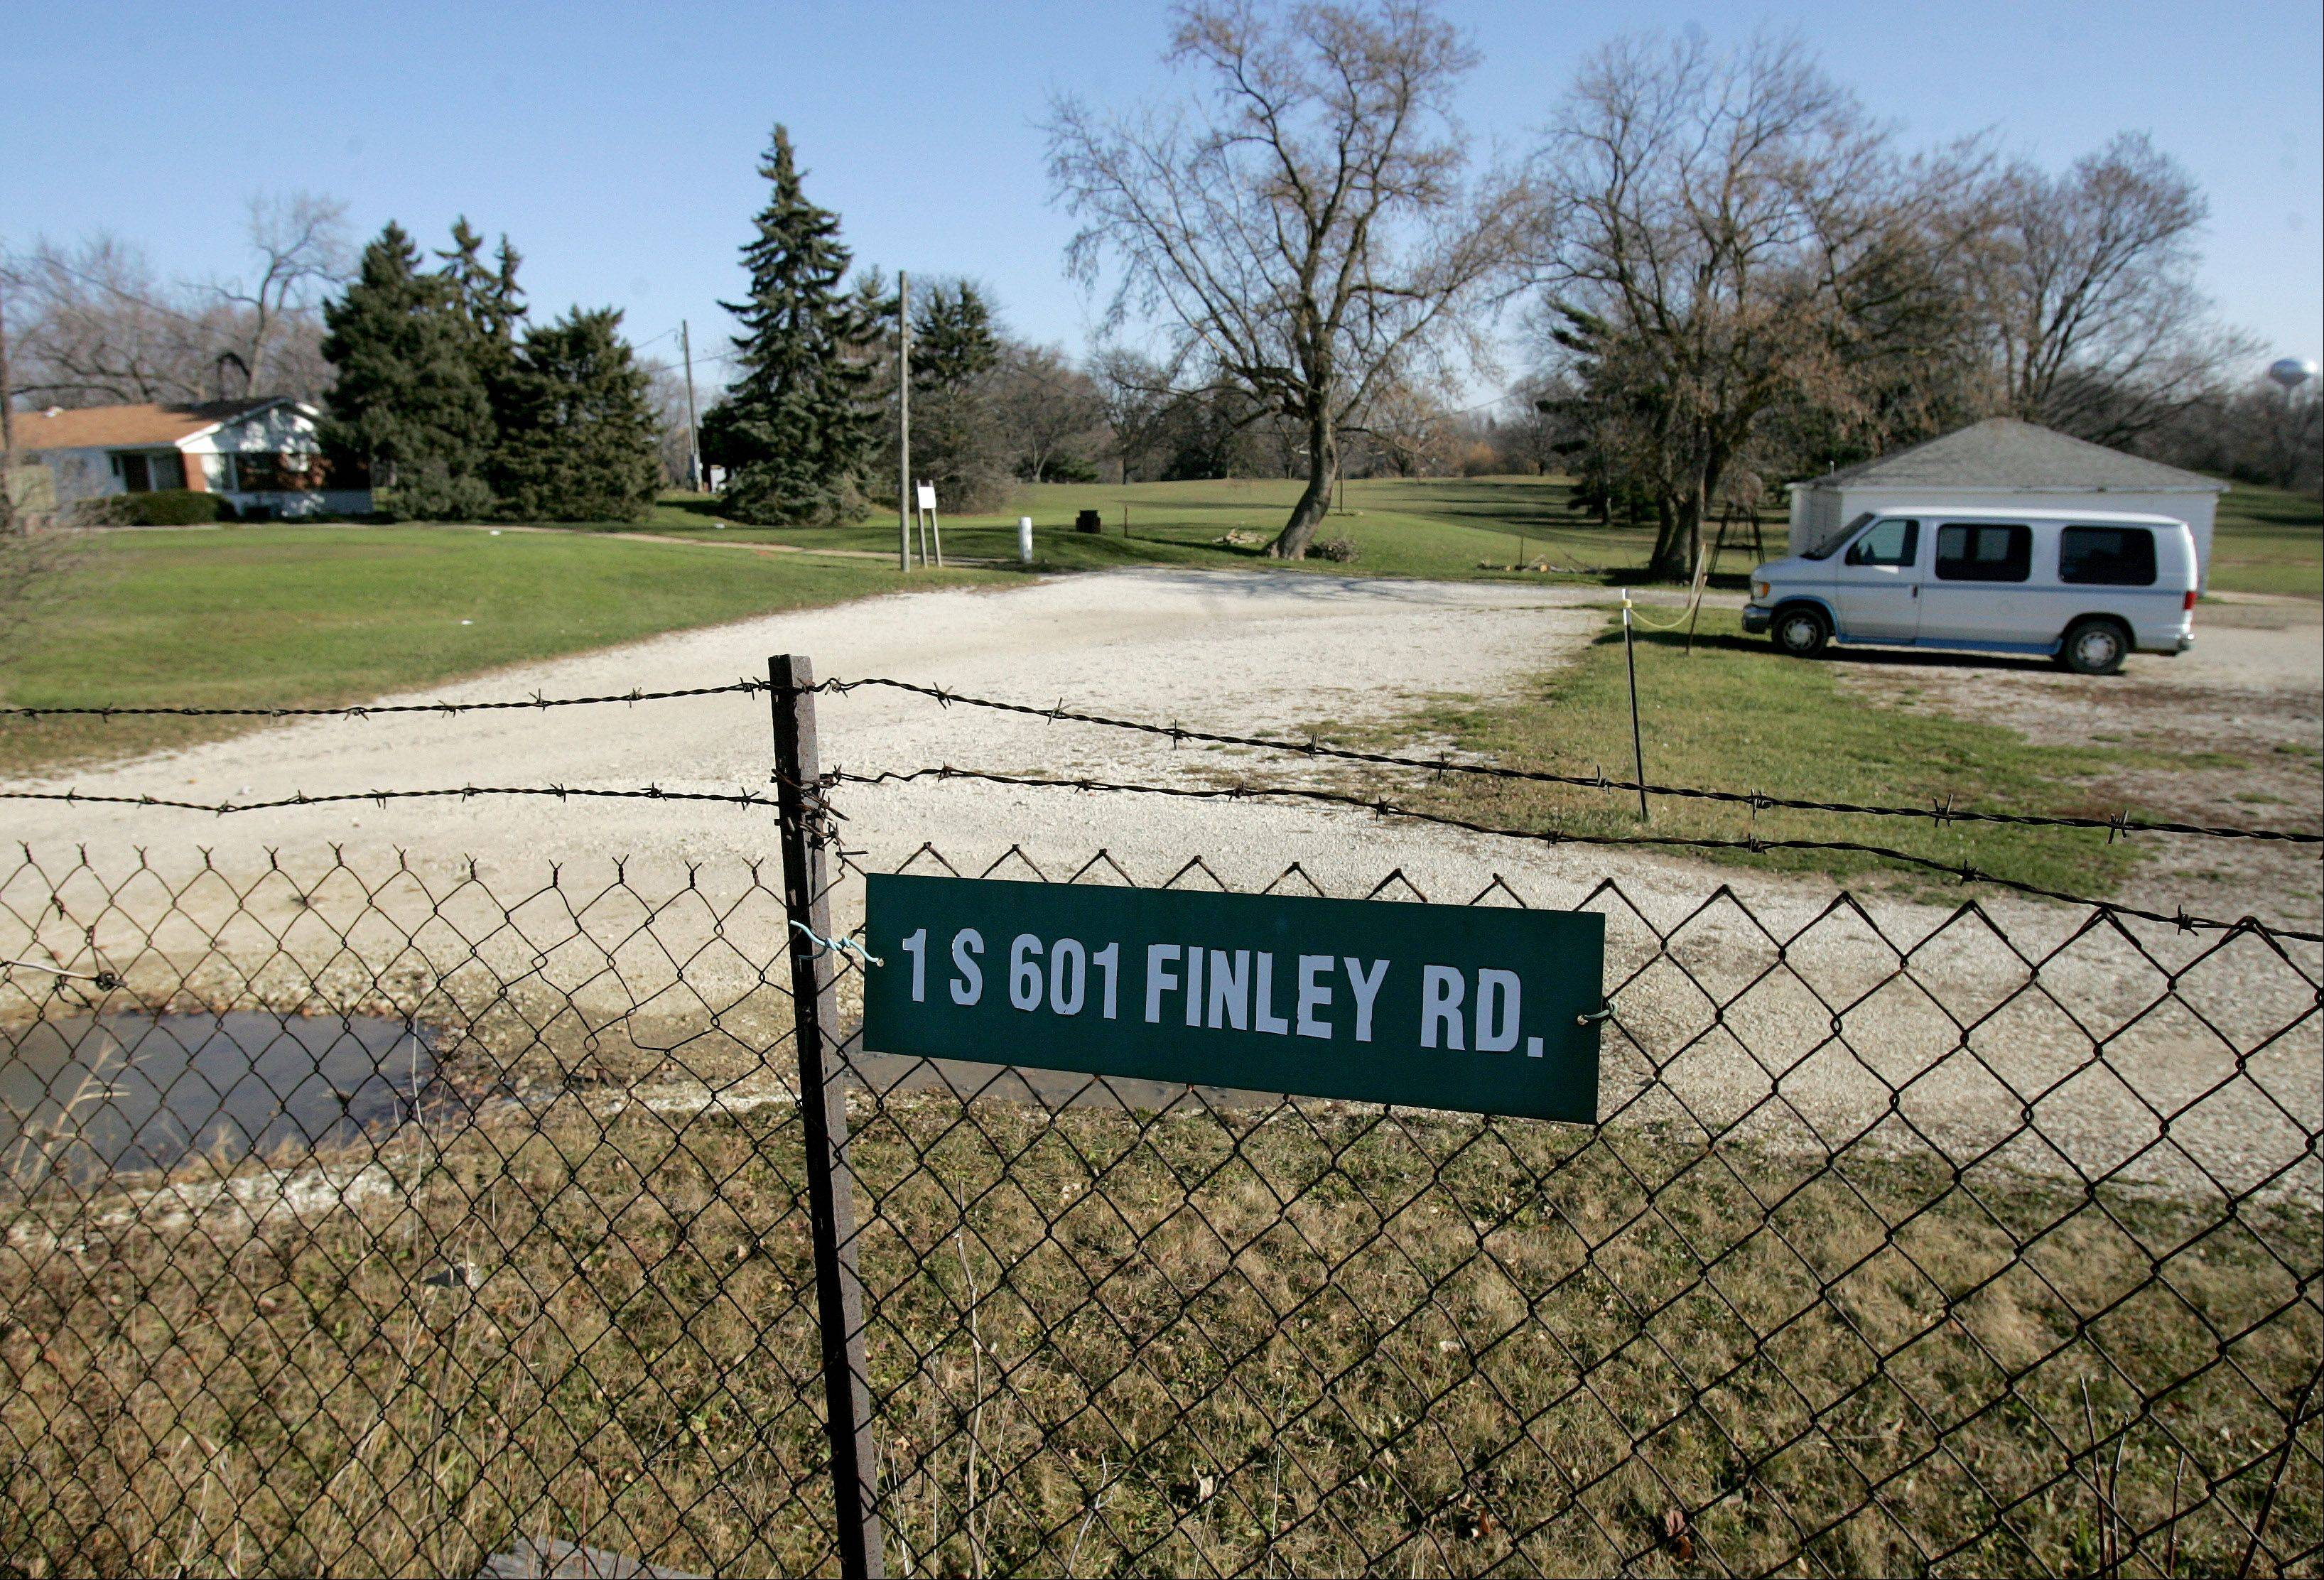 The Ken-Loch Golf Links near Lombard is for sale and could be redeveloped if DuPage County approves a plan to construct apartments and townhouses on the property.